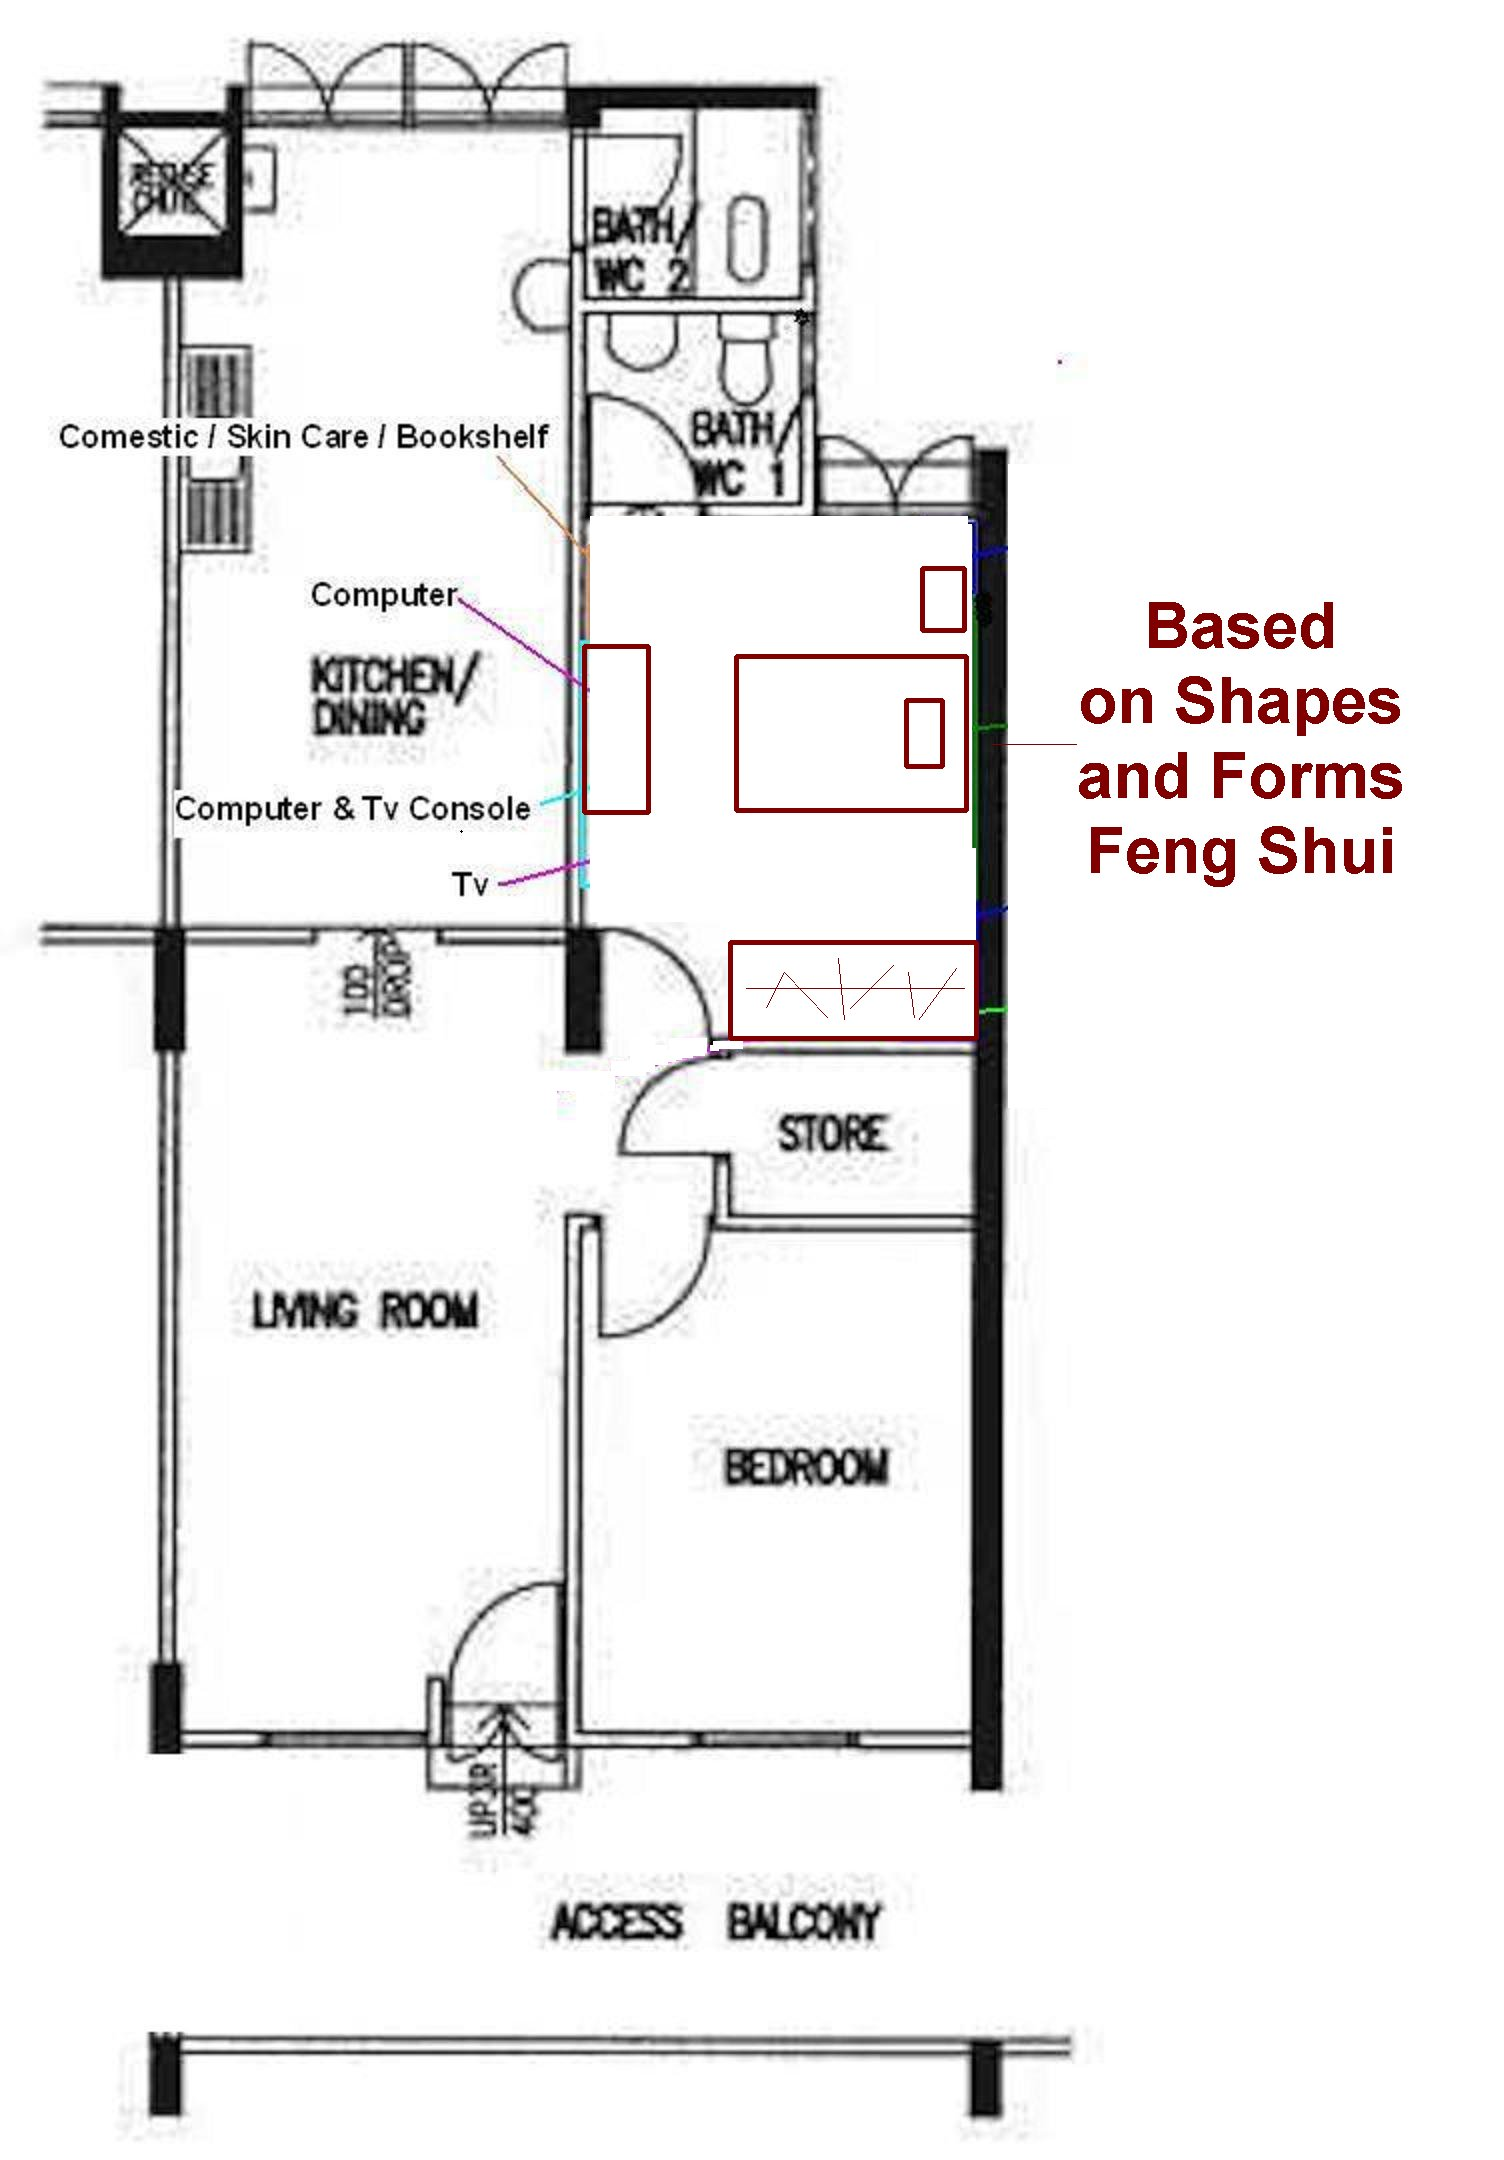 Bedroom feng shui general help fengshui geomancy net for Bedroom layout design ideas